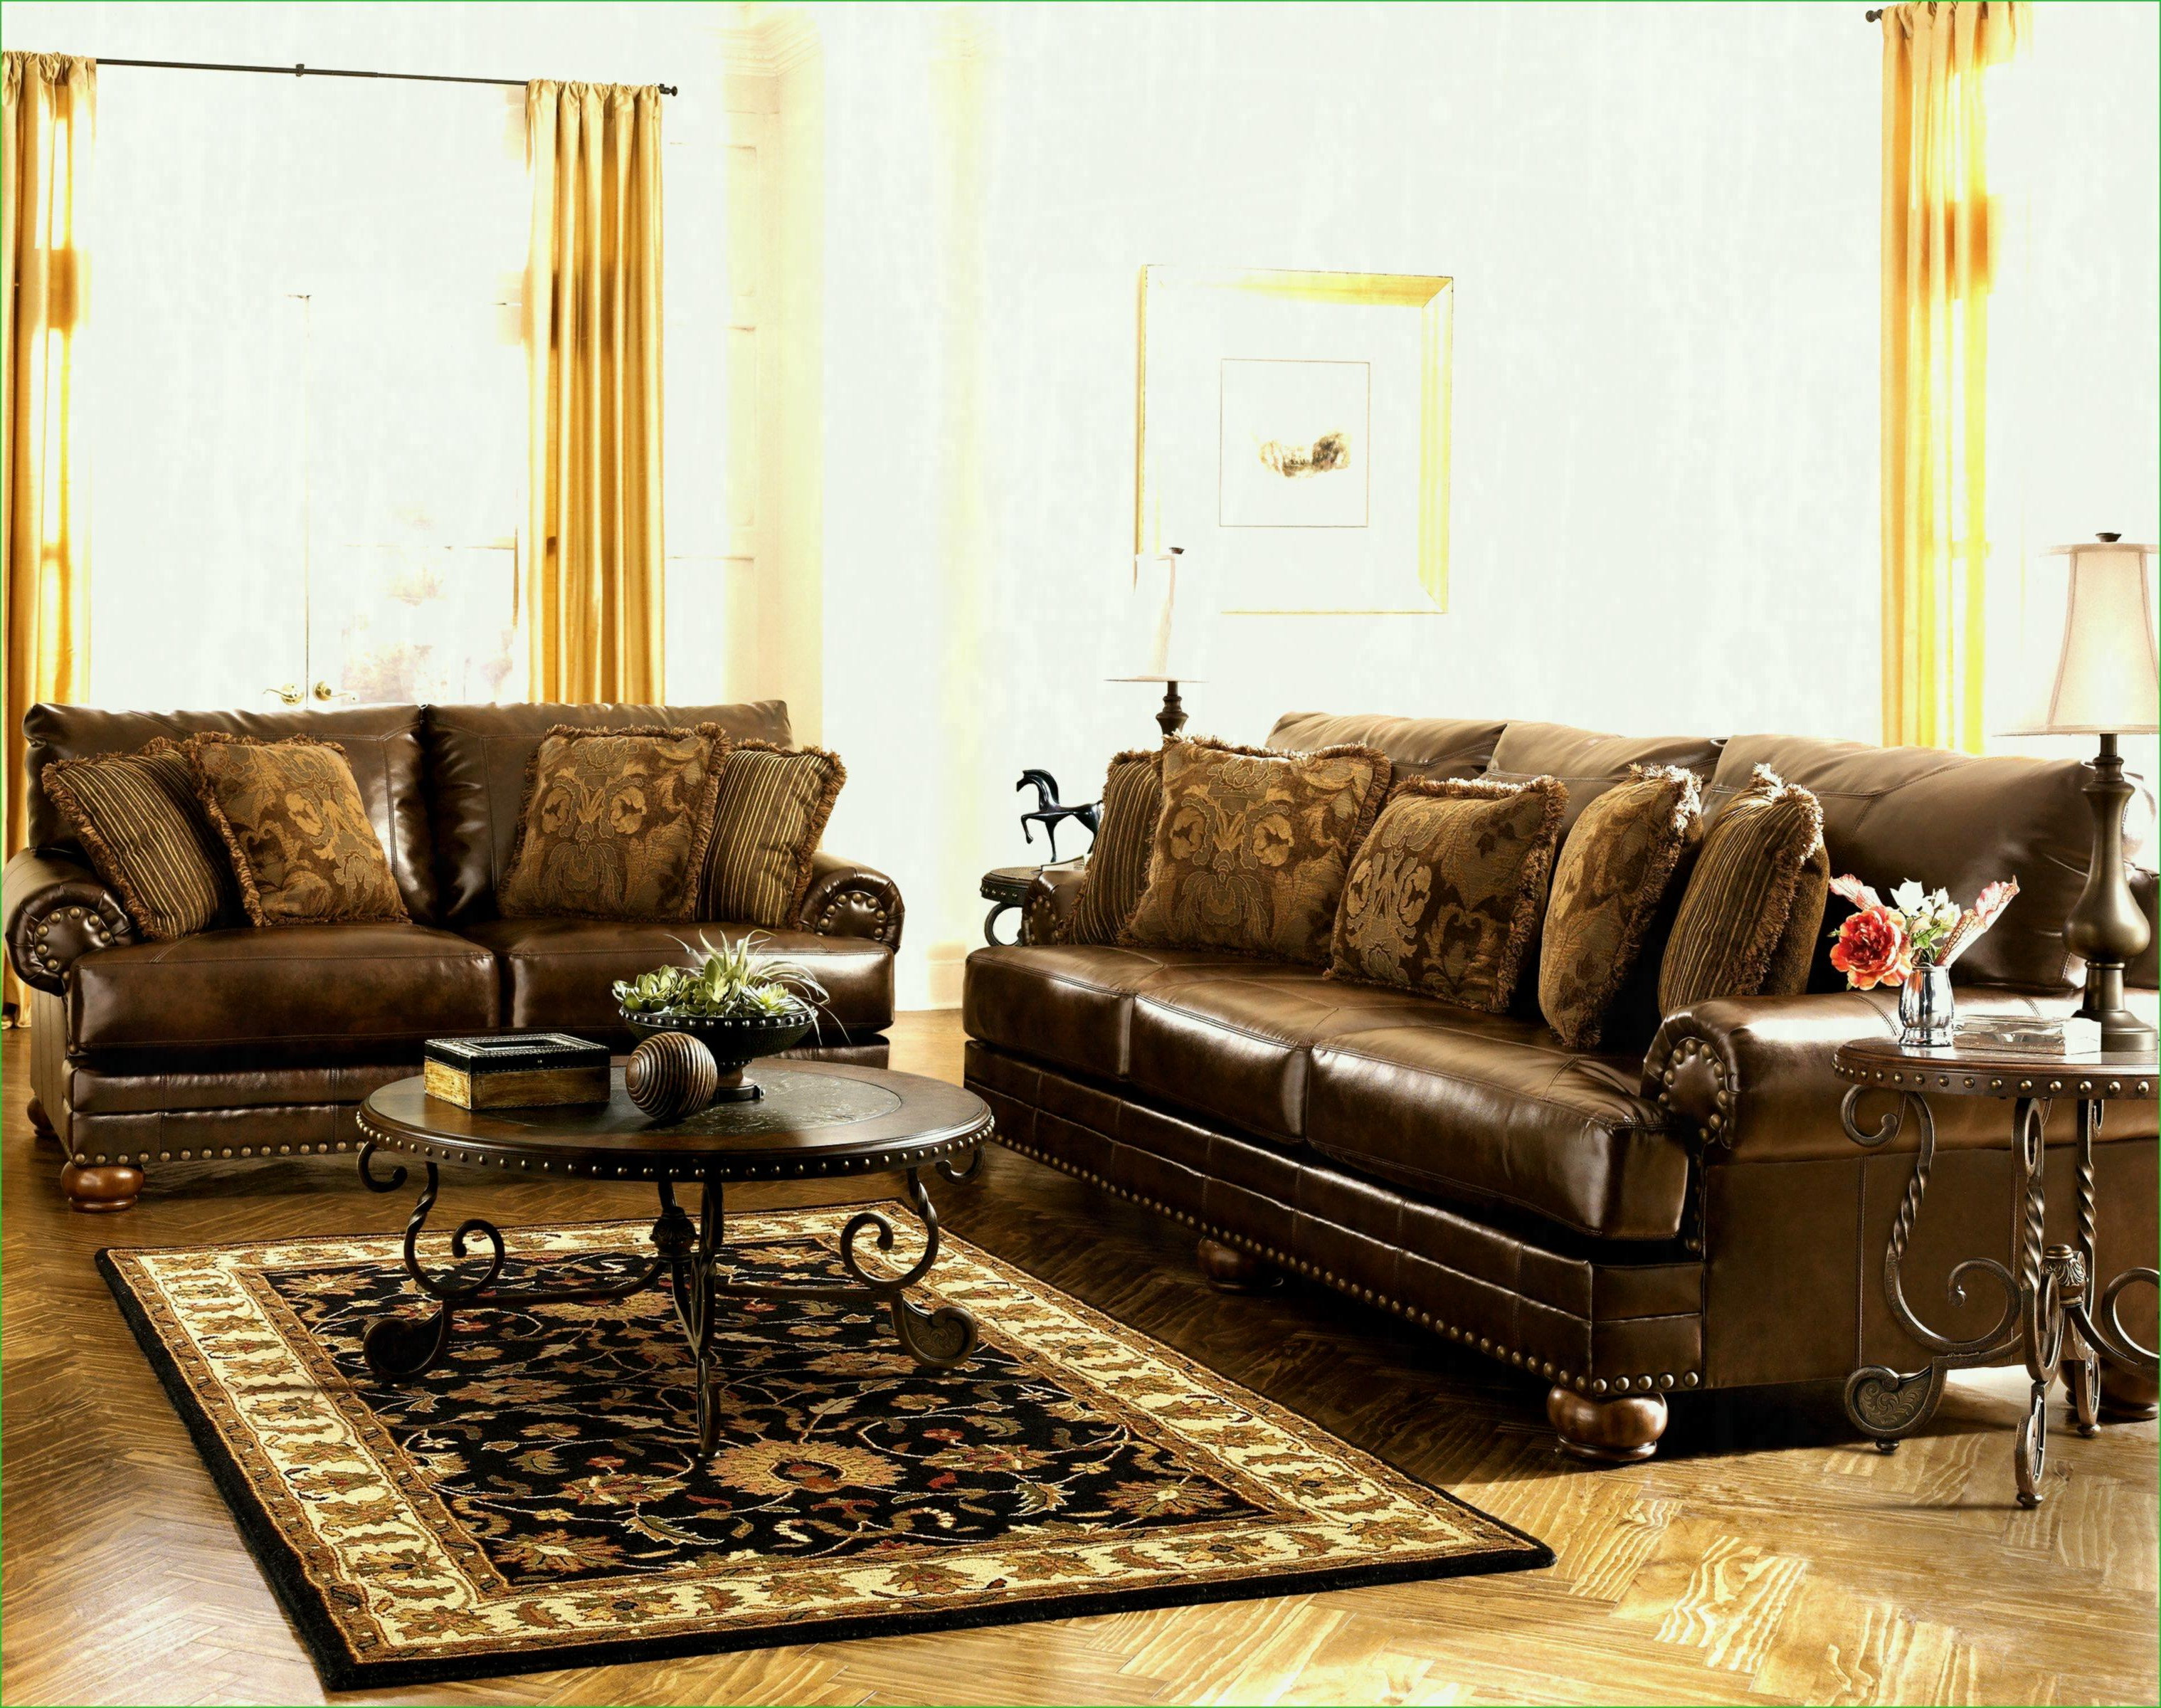 Trendy Mcculla Sofa Sectionals With Reversible Chaise With Ashley Furniture Small Sectional Sofas Discount Pitkin Motorized (Gallery 8 of 20)